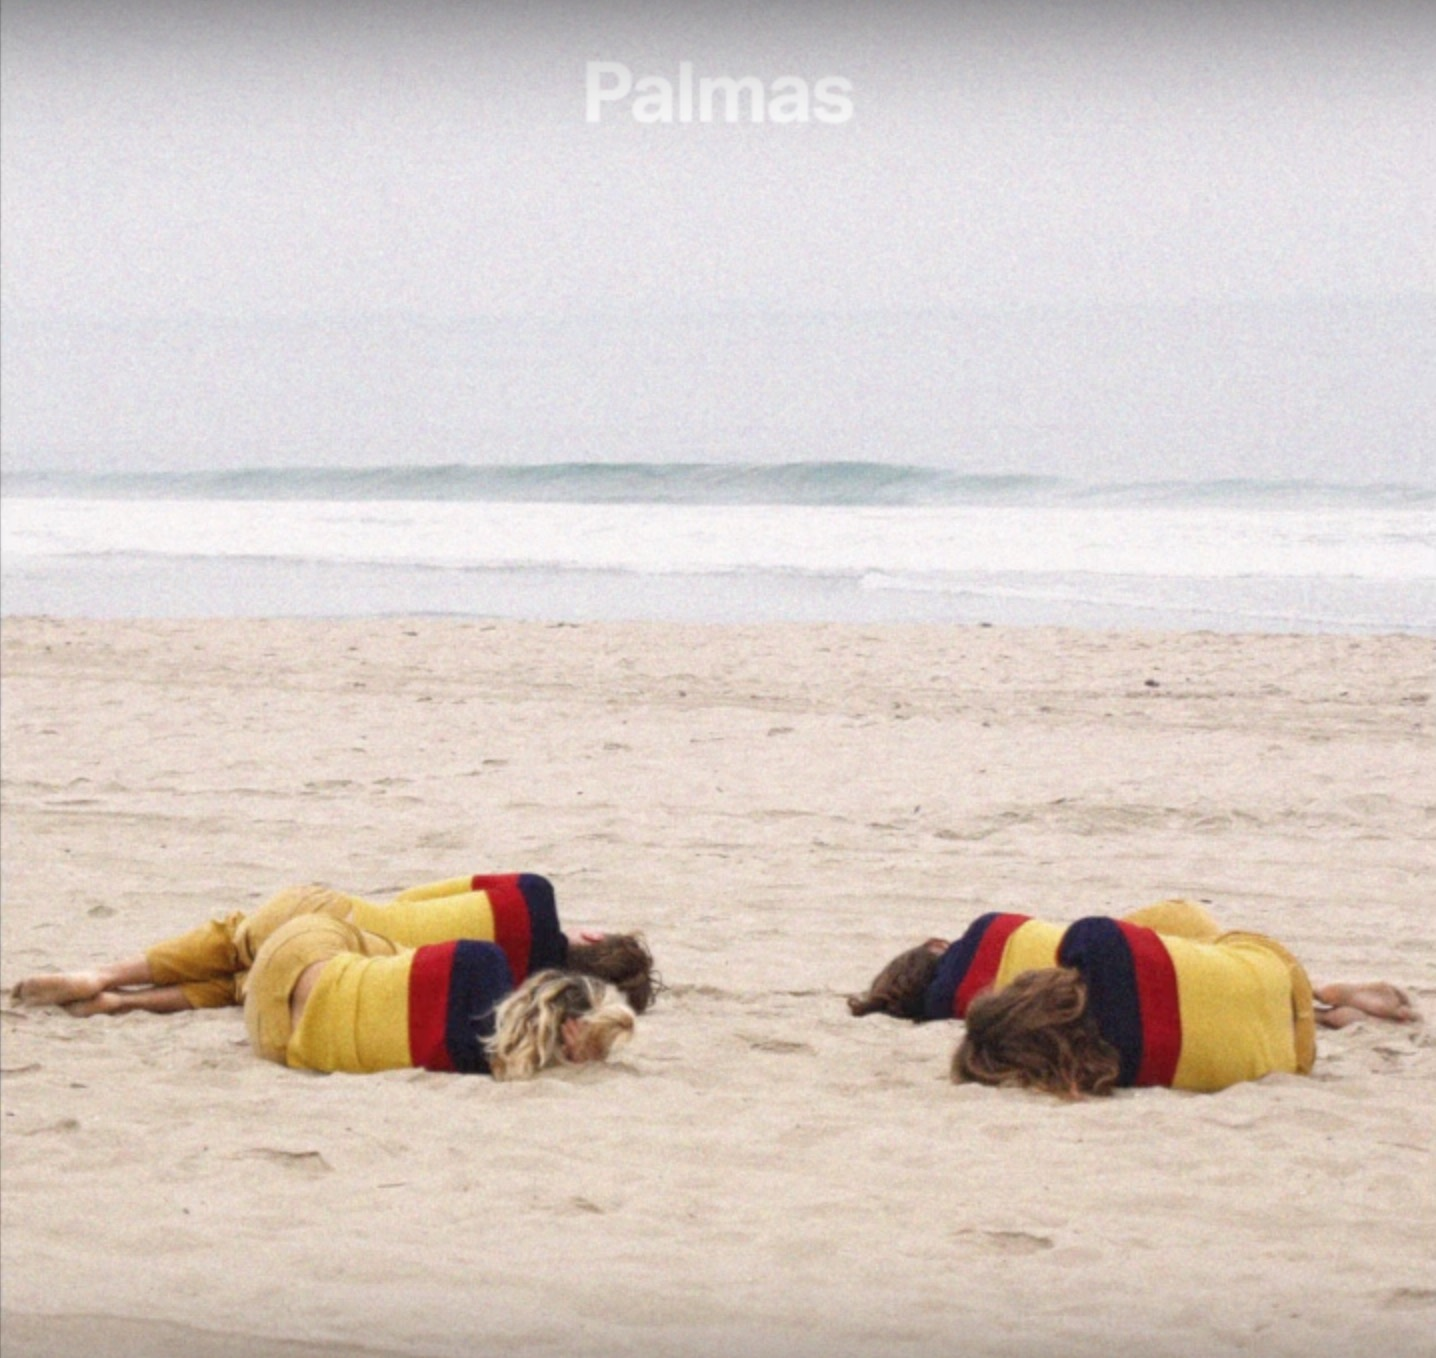 """Palmas ask """"Where Are You Going?"""" on new single"""